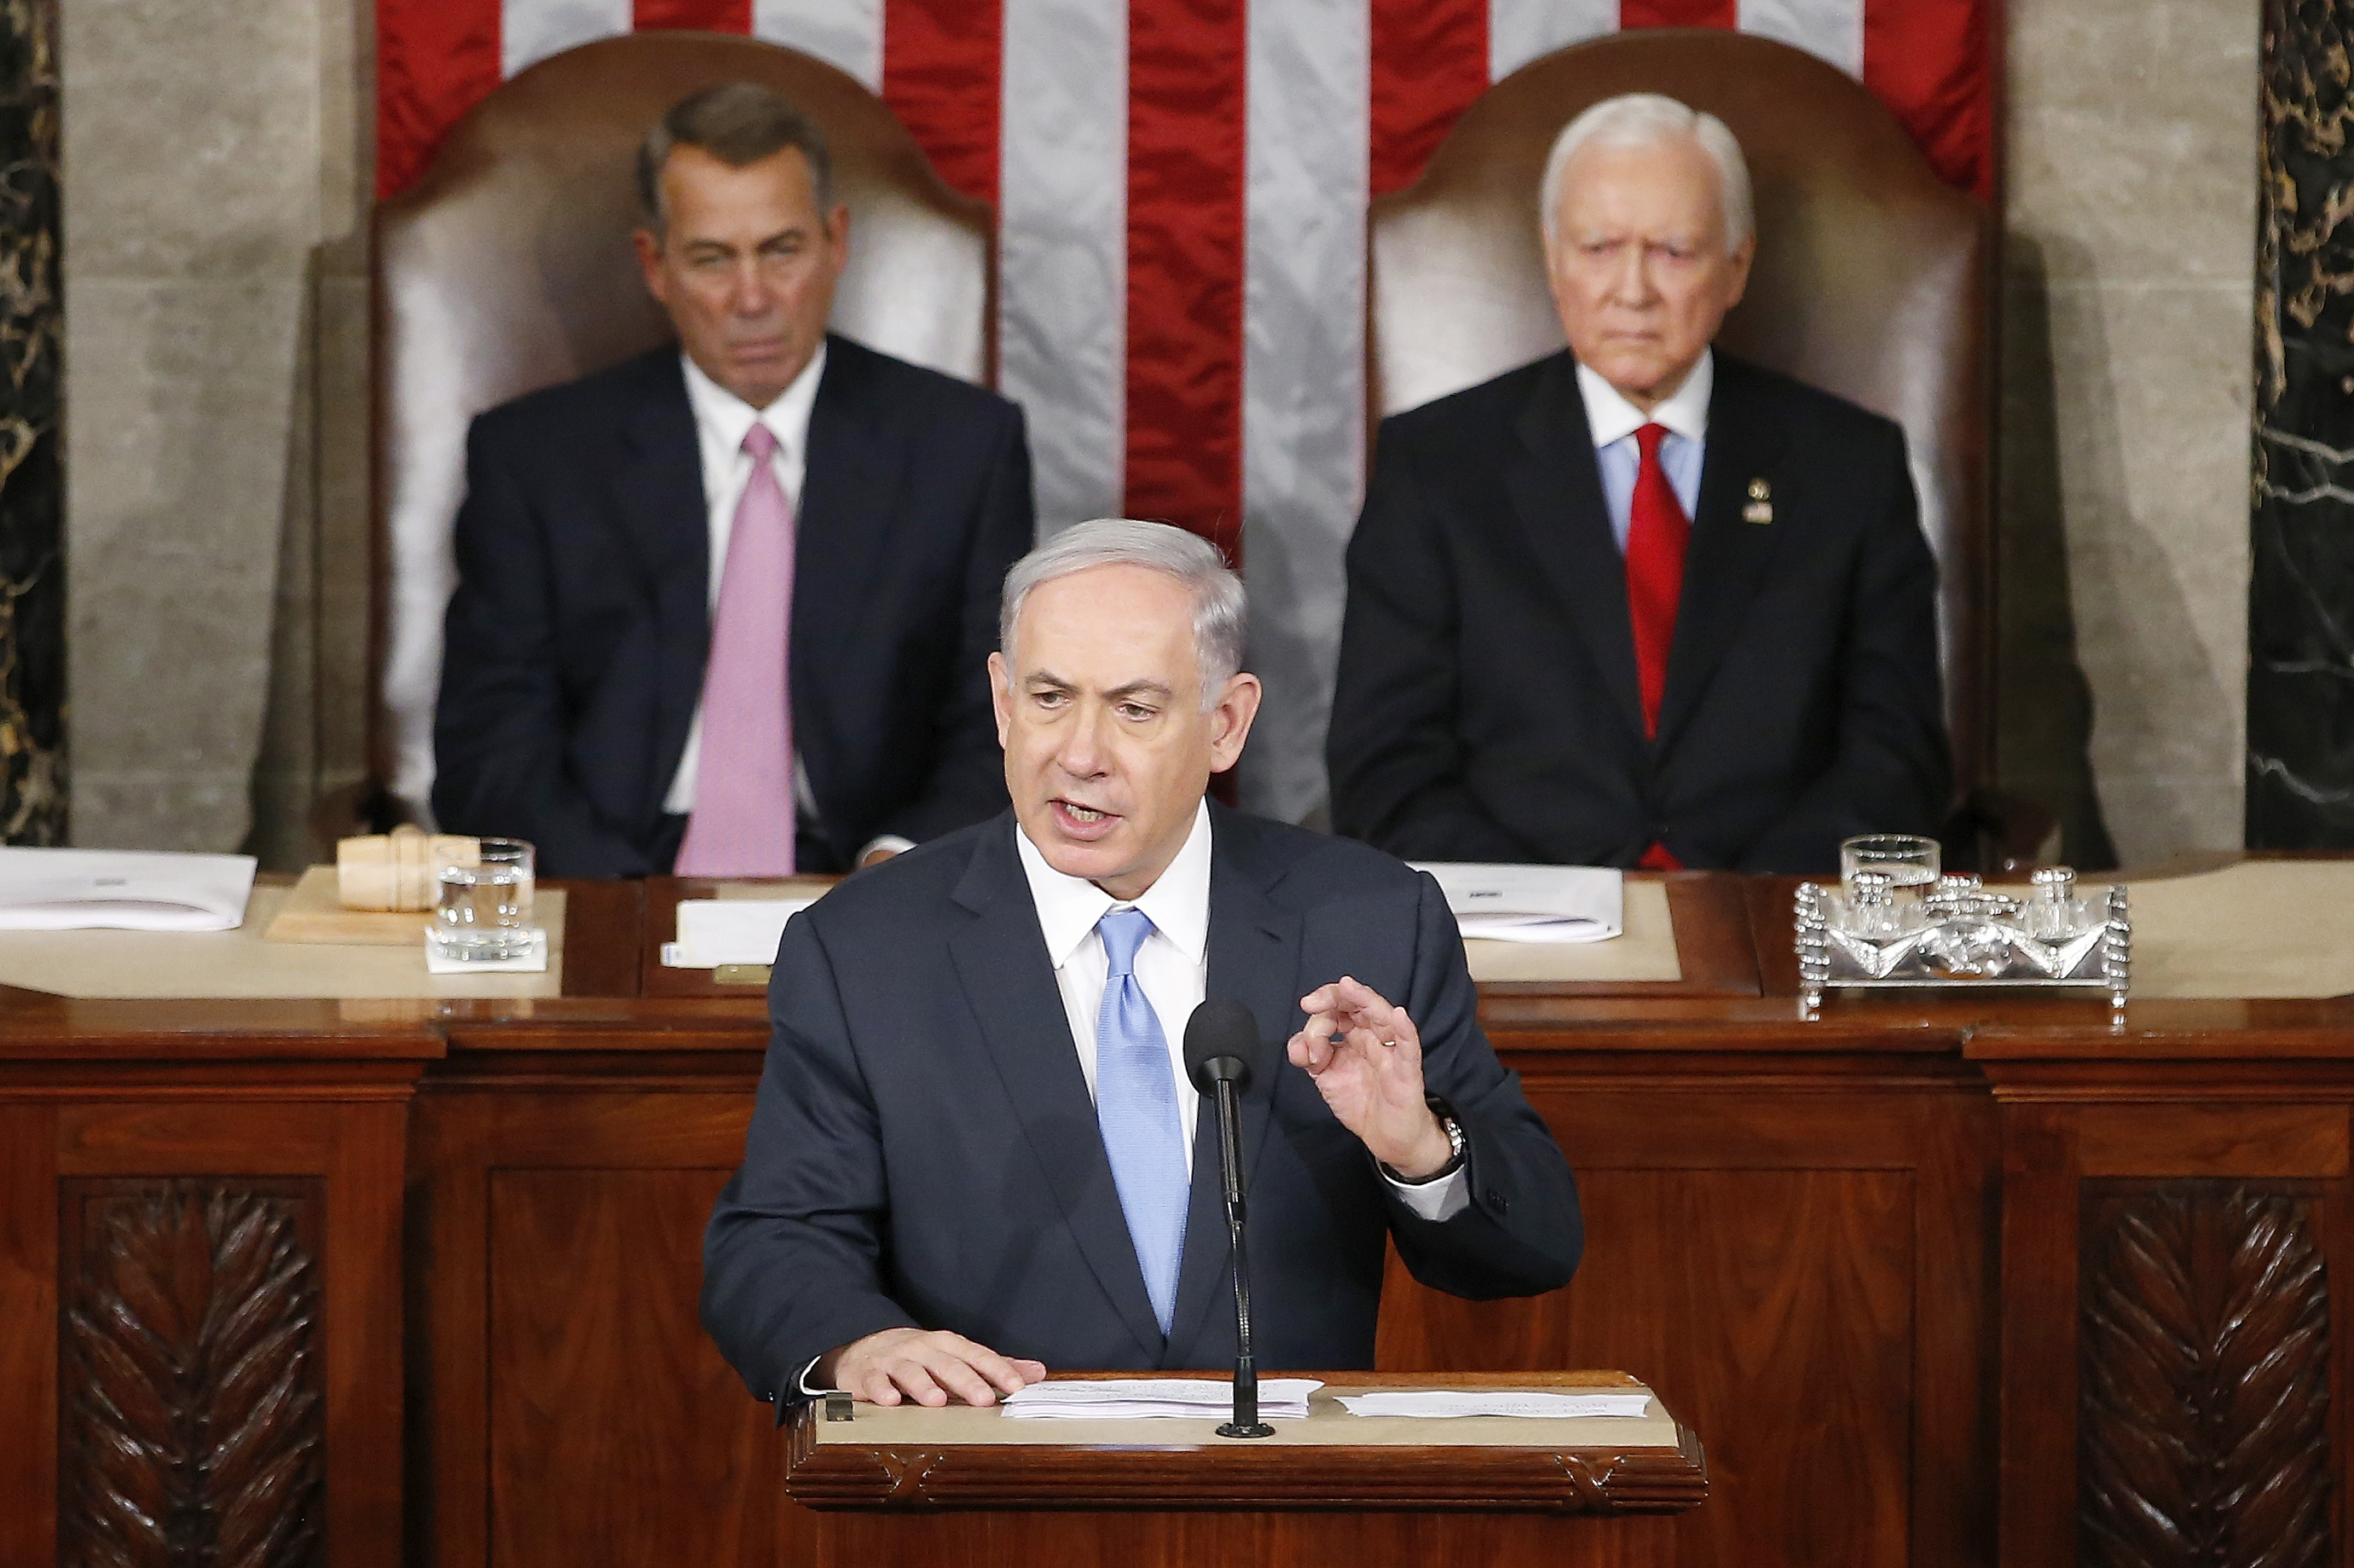 "Israeli Prime Minister Benjamin Netanyahu speaks before a joint meeting of Congress on Capitol Hill in Washington on Tuesday. Netanyahu said the world must unite to ""stop Iran's march of conquest, subjugation and terror."" House Speaker John Boehner of Ohio (left) and Sen. Orrin Hatch, R-Utah, listen. Andrew Harnik/AP"